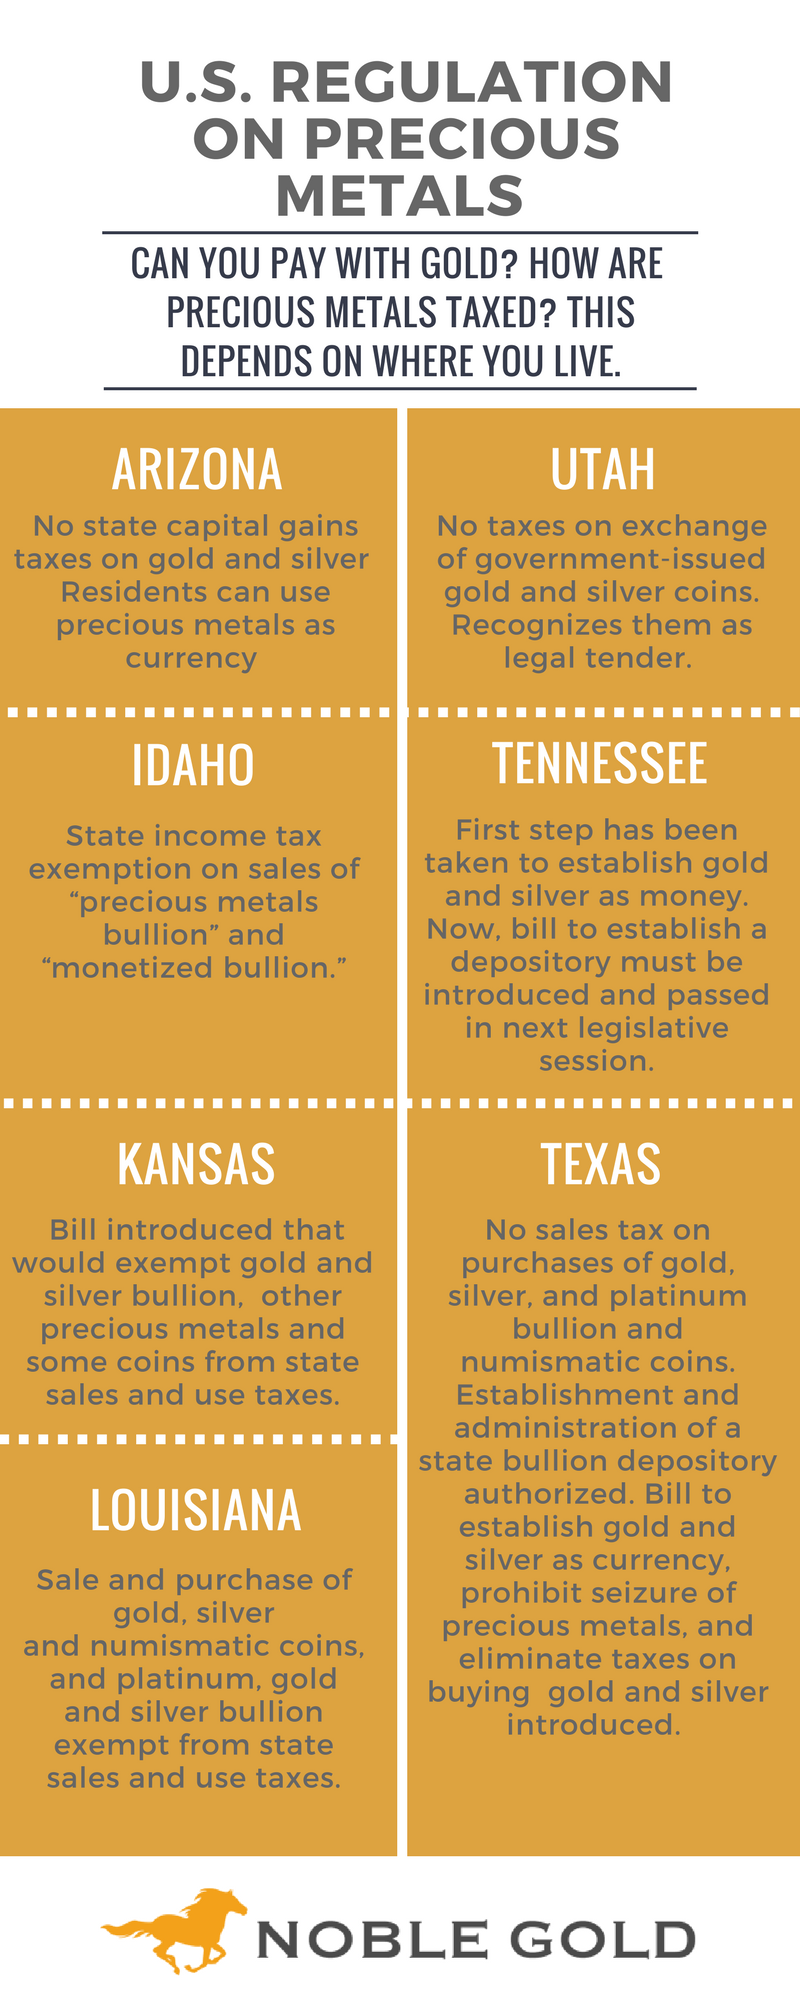 US Regulation on Precious Metals Infogrpahic.png